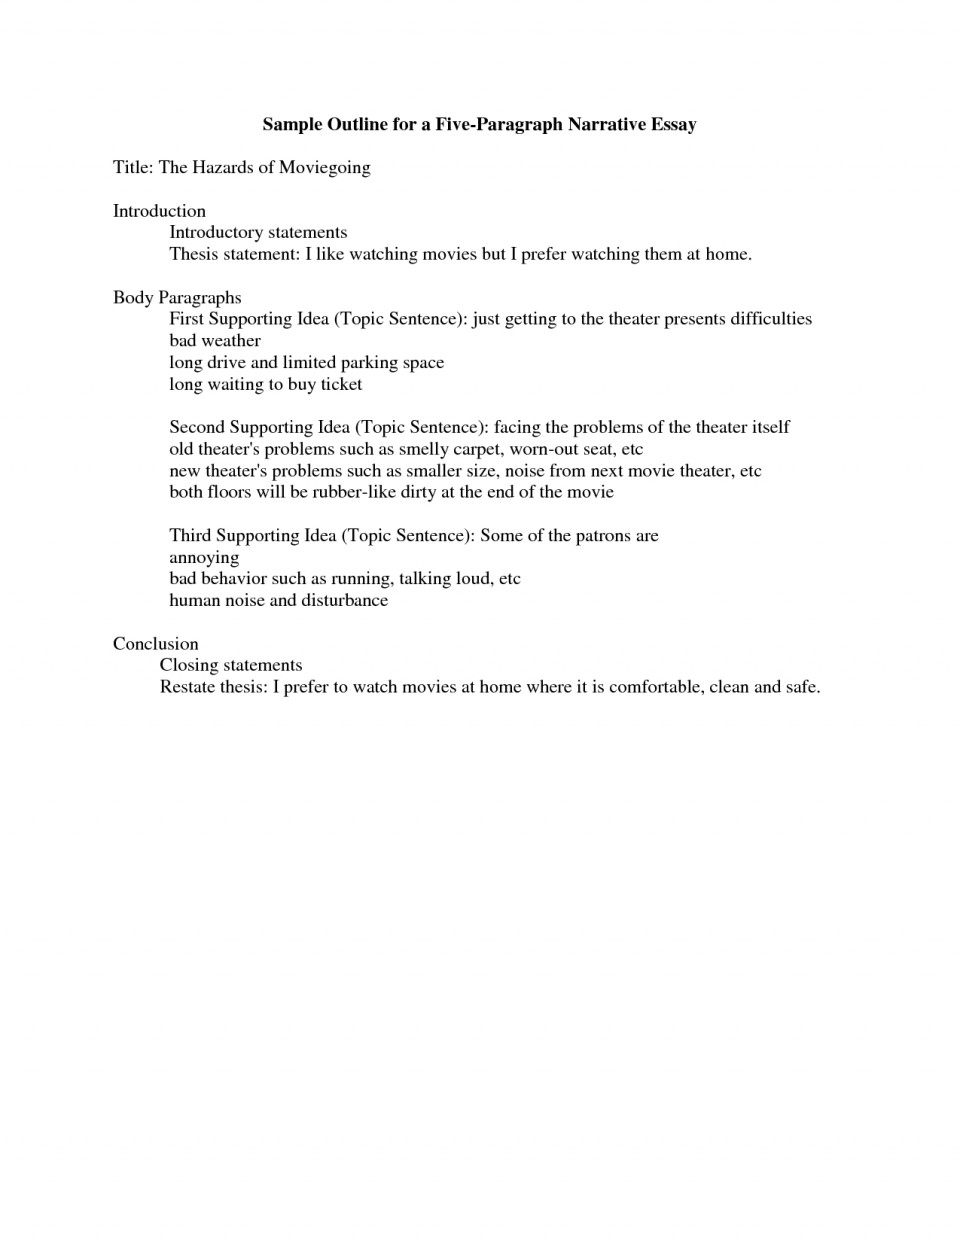 005 College Level Narrative Essay Outline Marvelous Template Example 960